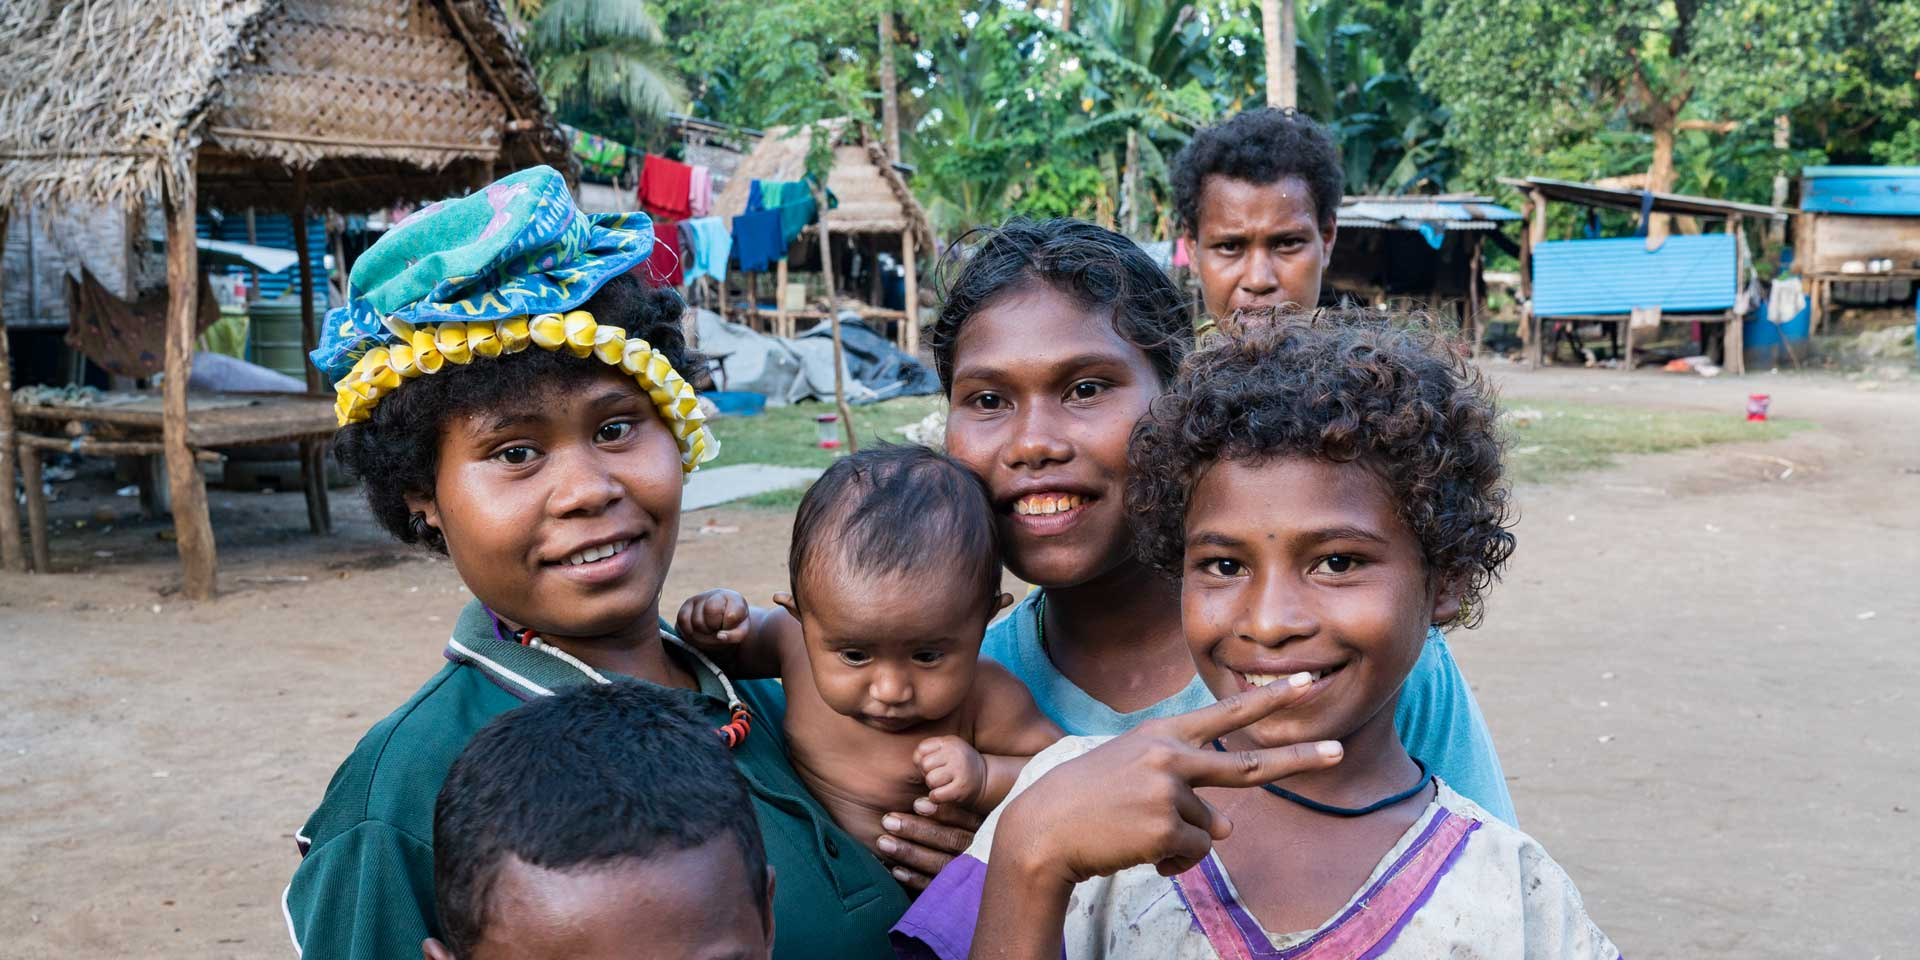 300 Days of Sunshine Light Up Papua New Guinea\'s Future.